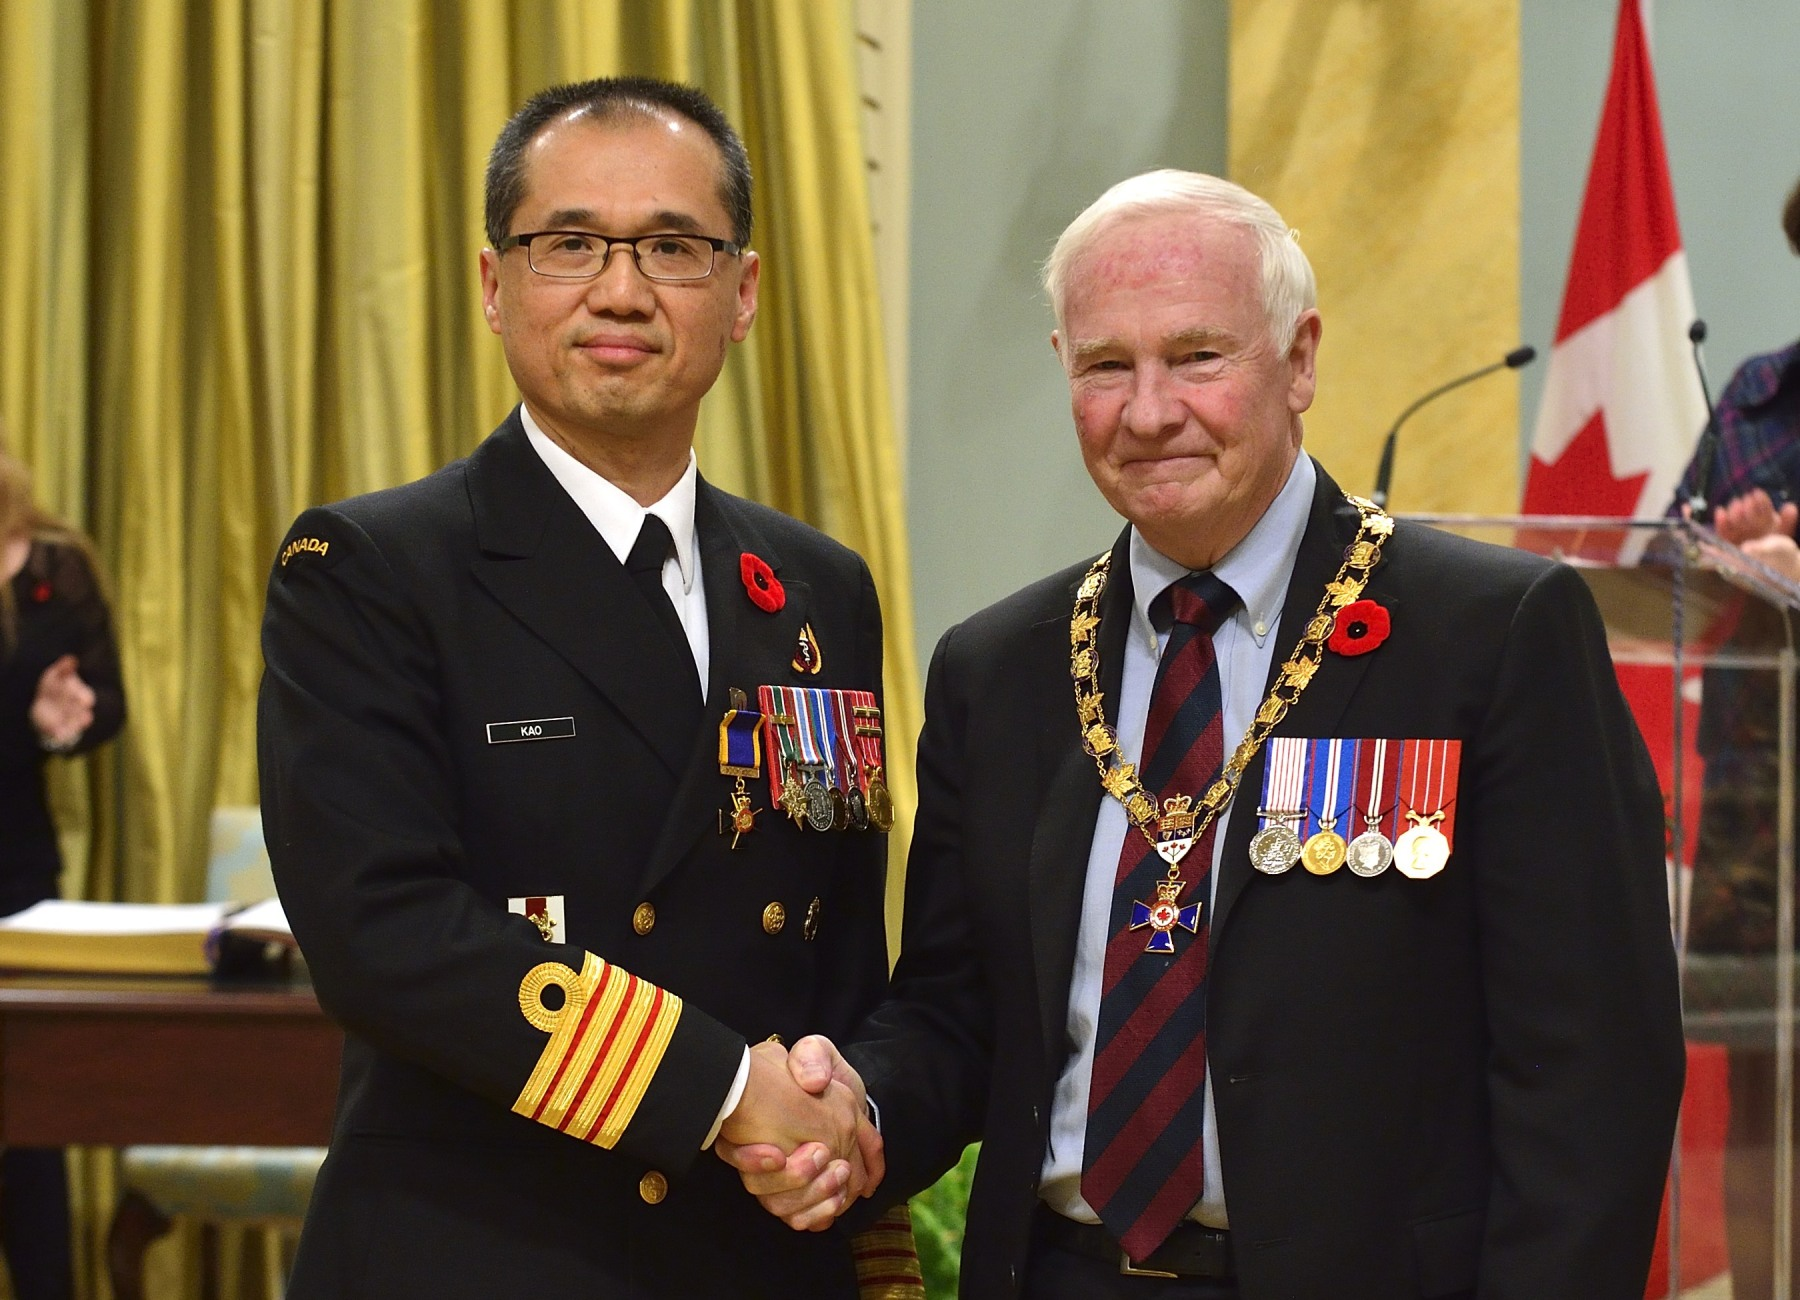 His Excellency presented the Order of Military Merit at the Officer level (O.M.M.) to Captain(N) Raymond Kao, O.M.M., C.D., 1 Canadian Field Hospital, Petawawa, Ont.